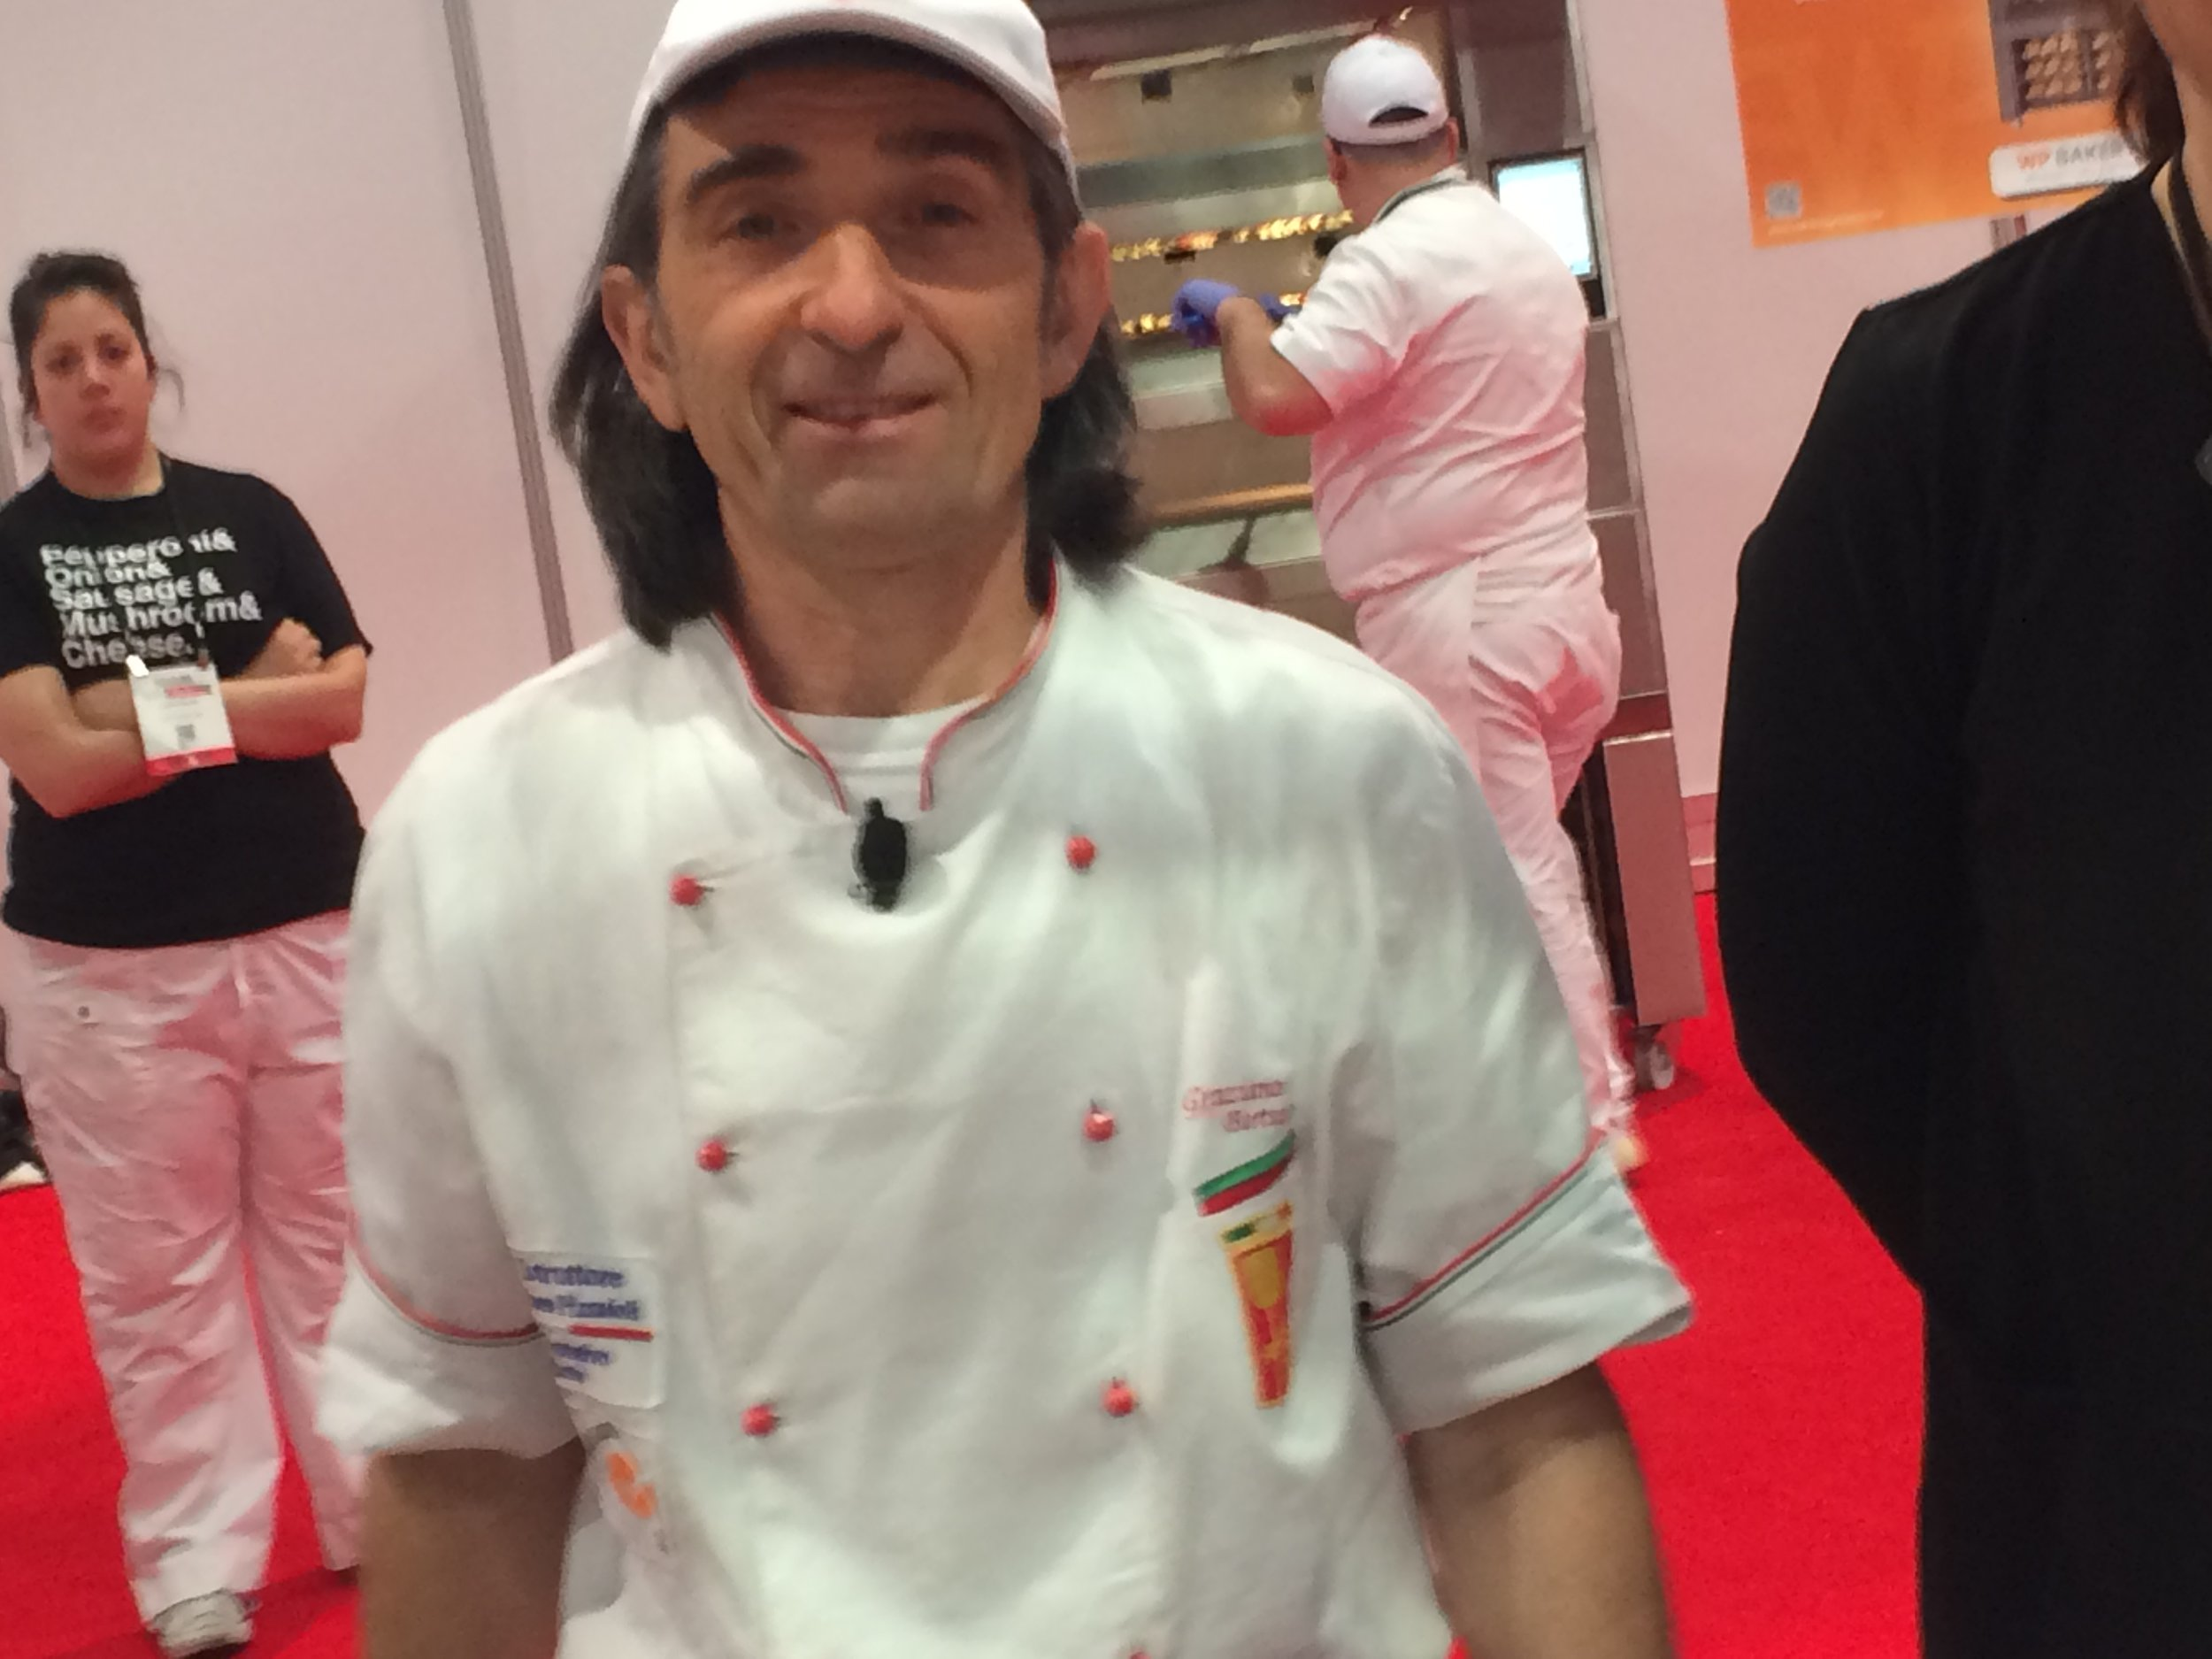 Graziano Bertuzza is a legend of pizza making